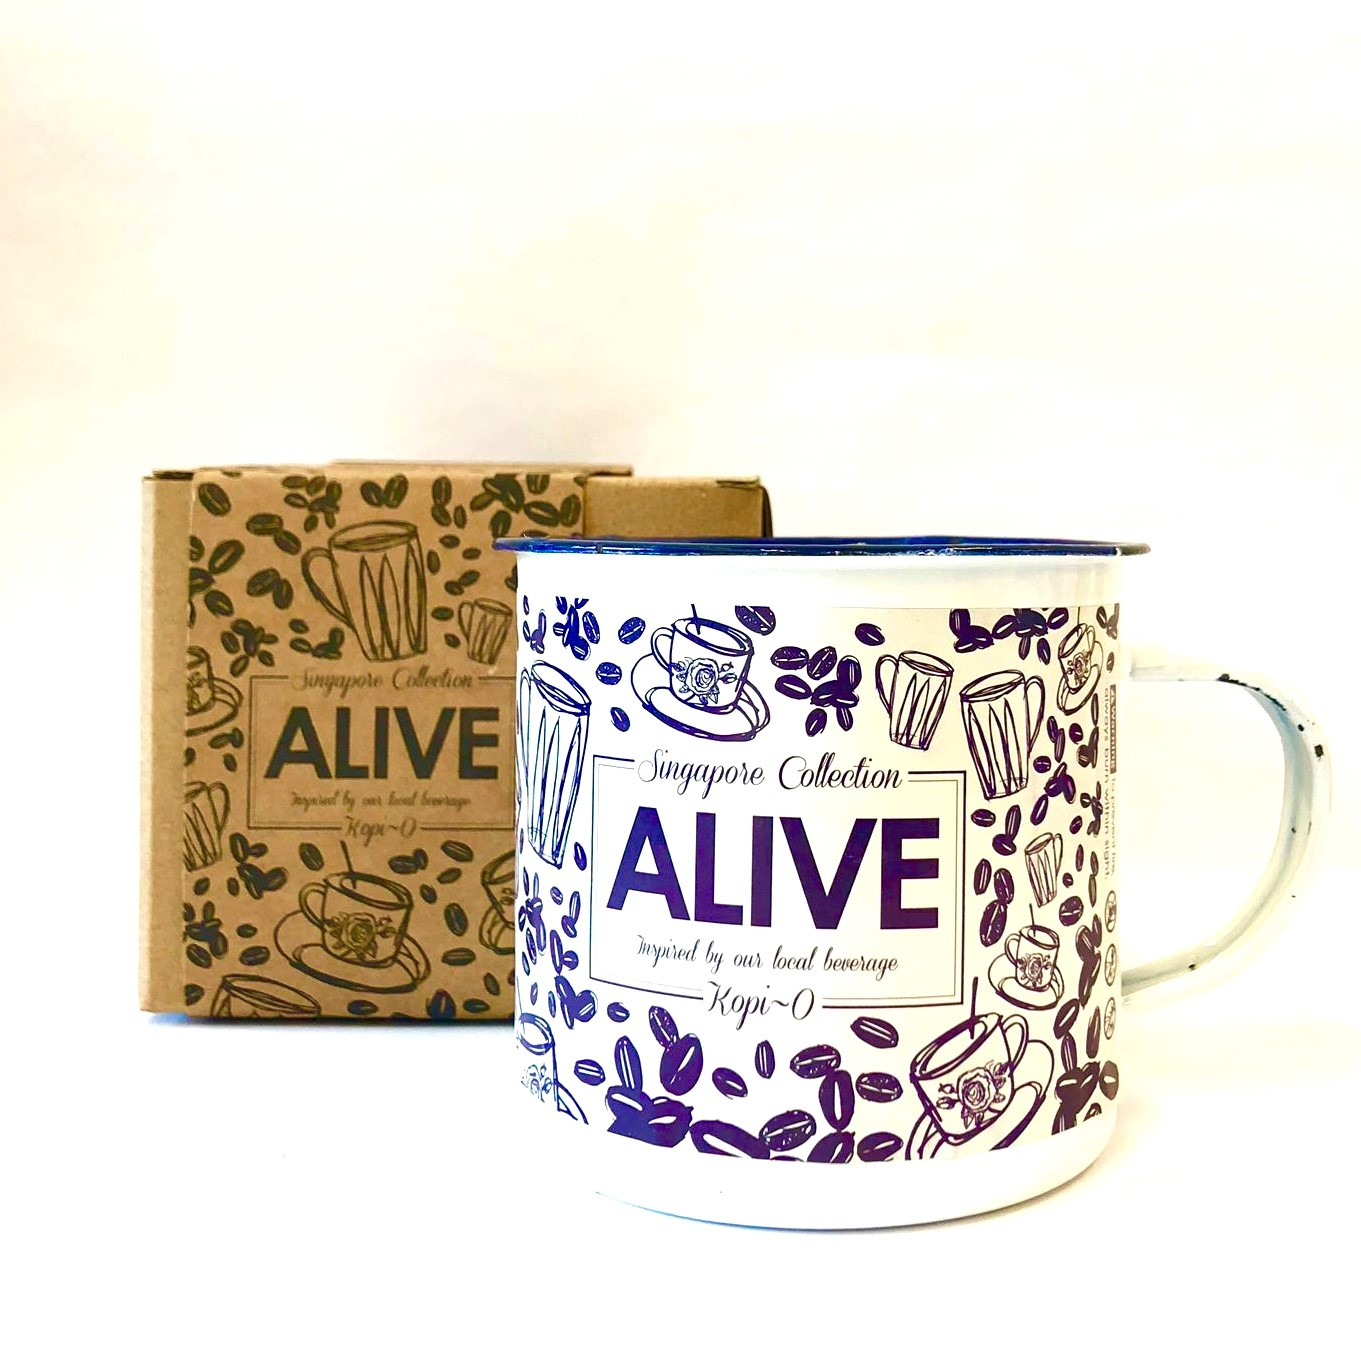 ALIVE - Scented Candle inspired by Kopi-O (350ml Enamel Mug; 90hrs)